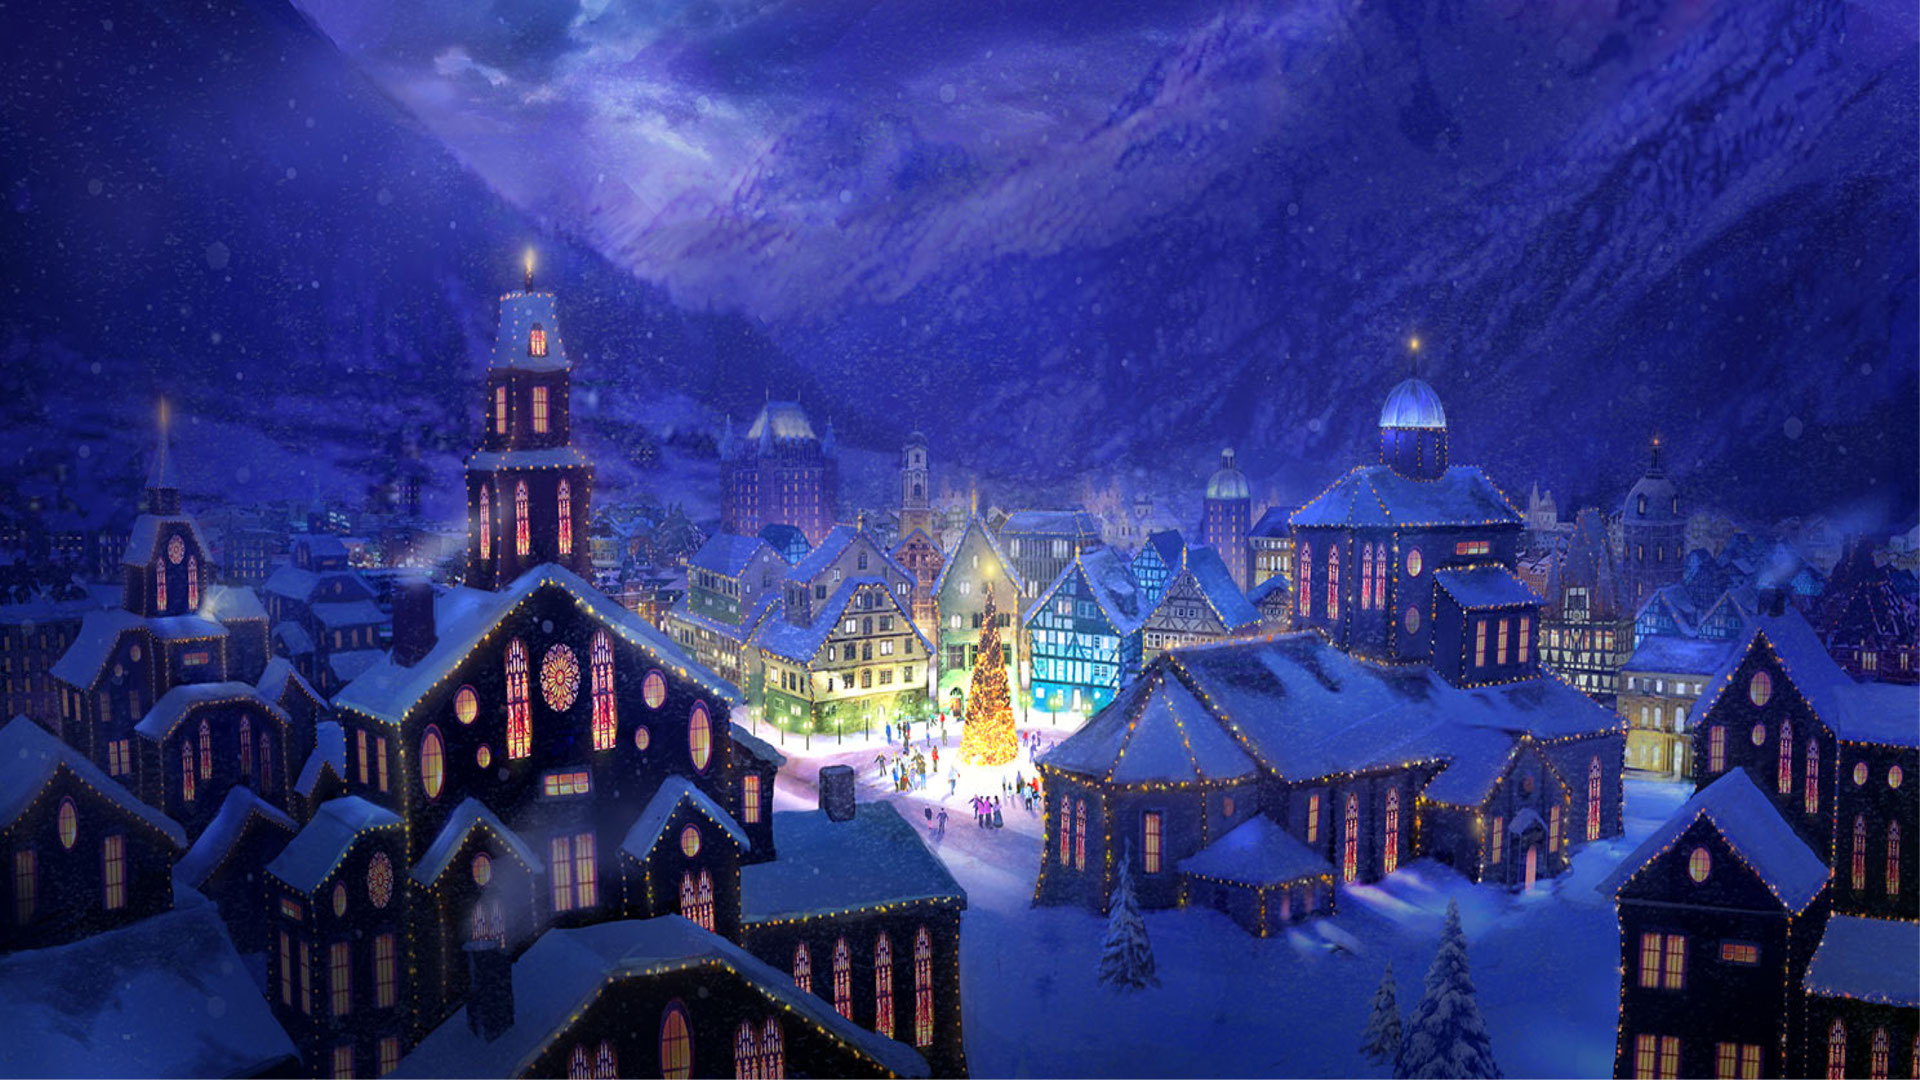 wallpaper village scene winter christmas wallpapers Car Pictures 1920x1080